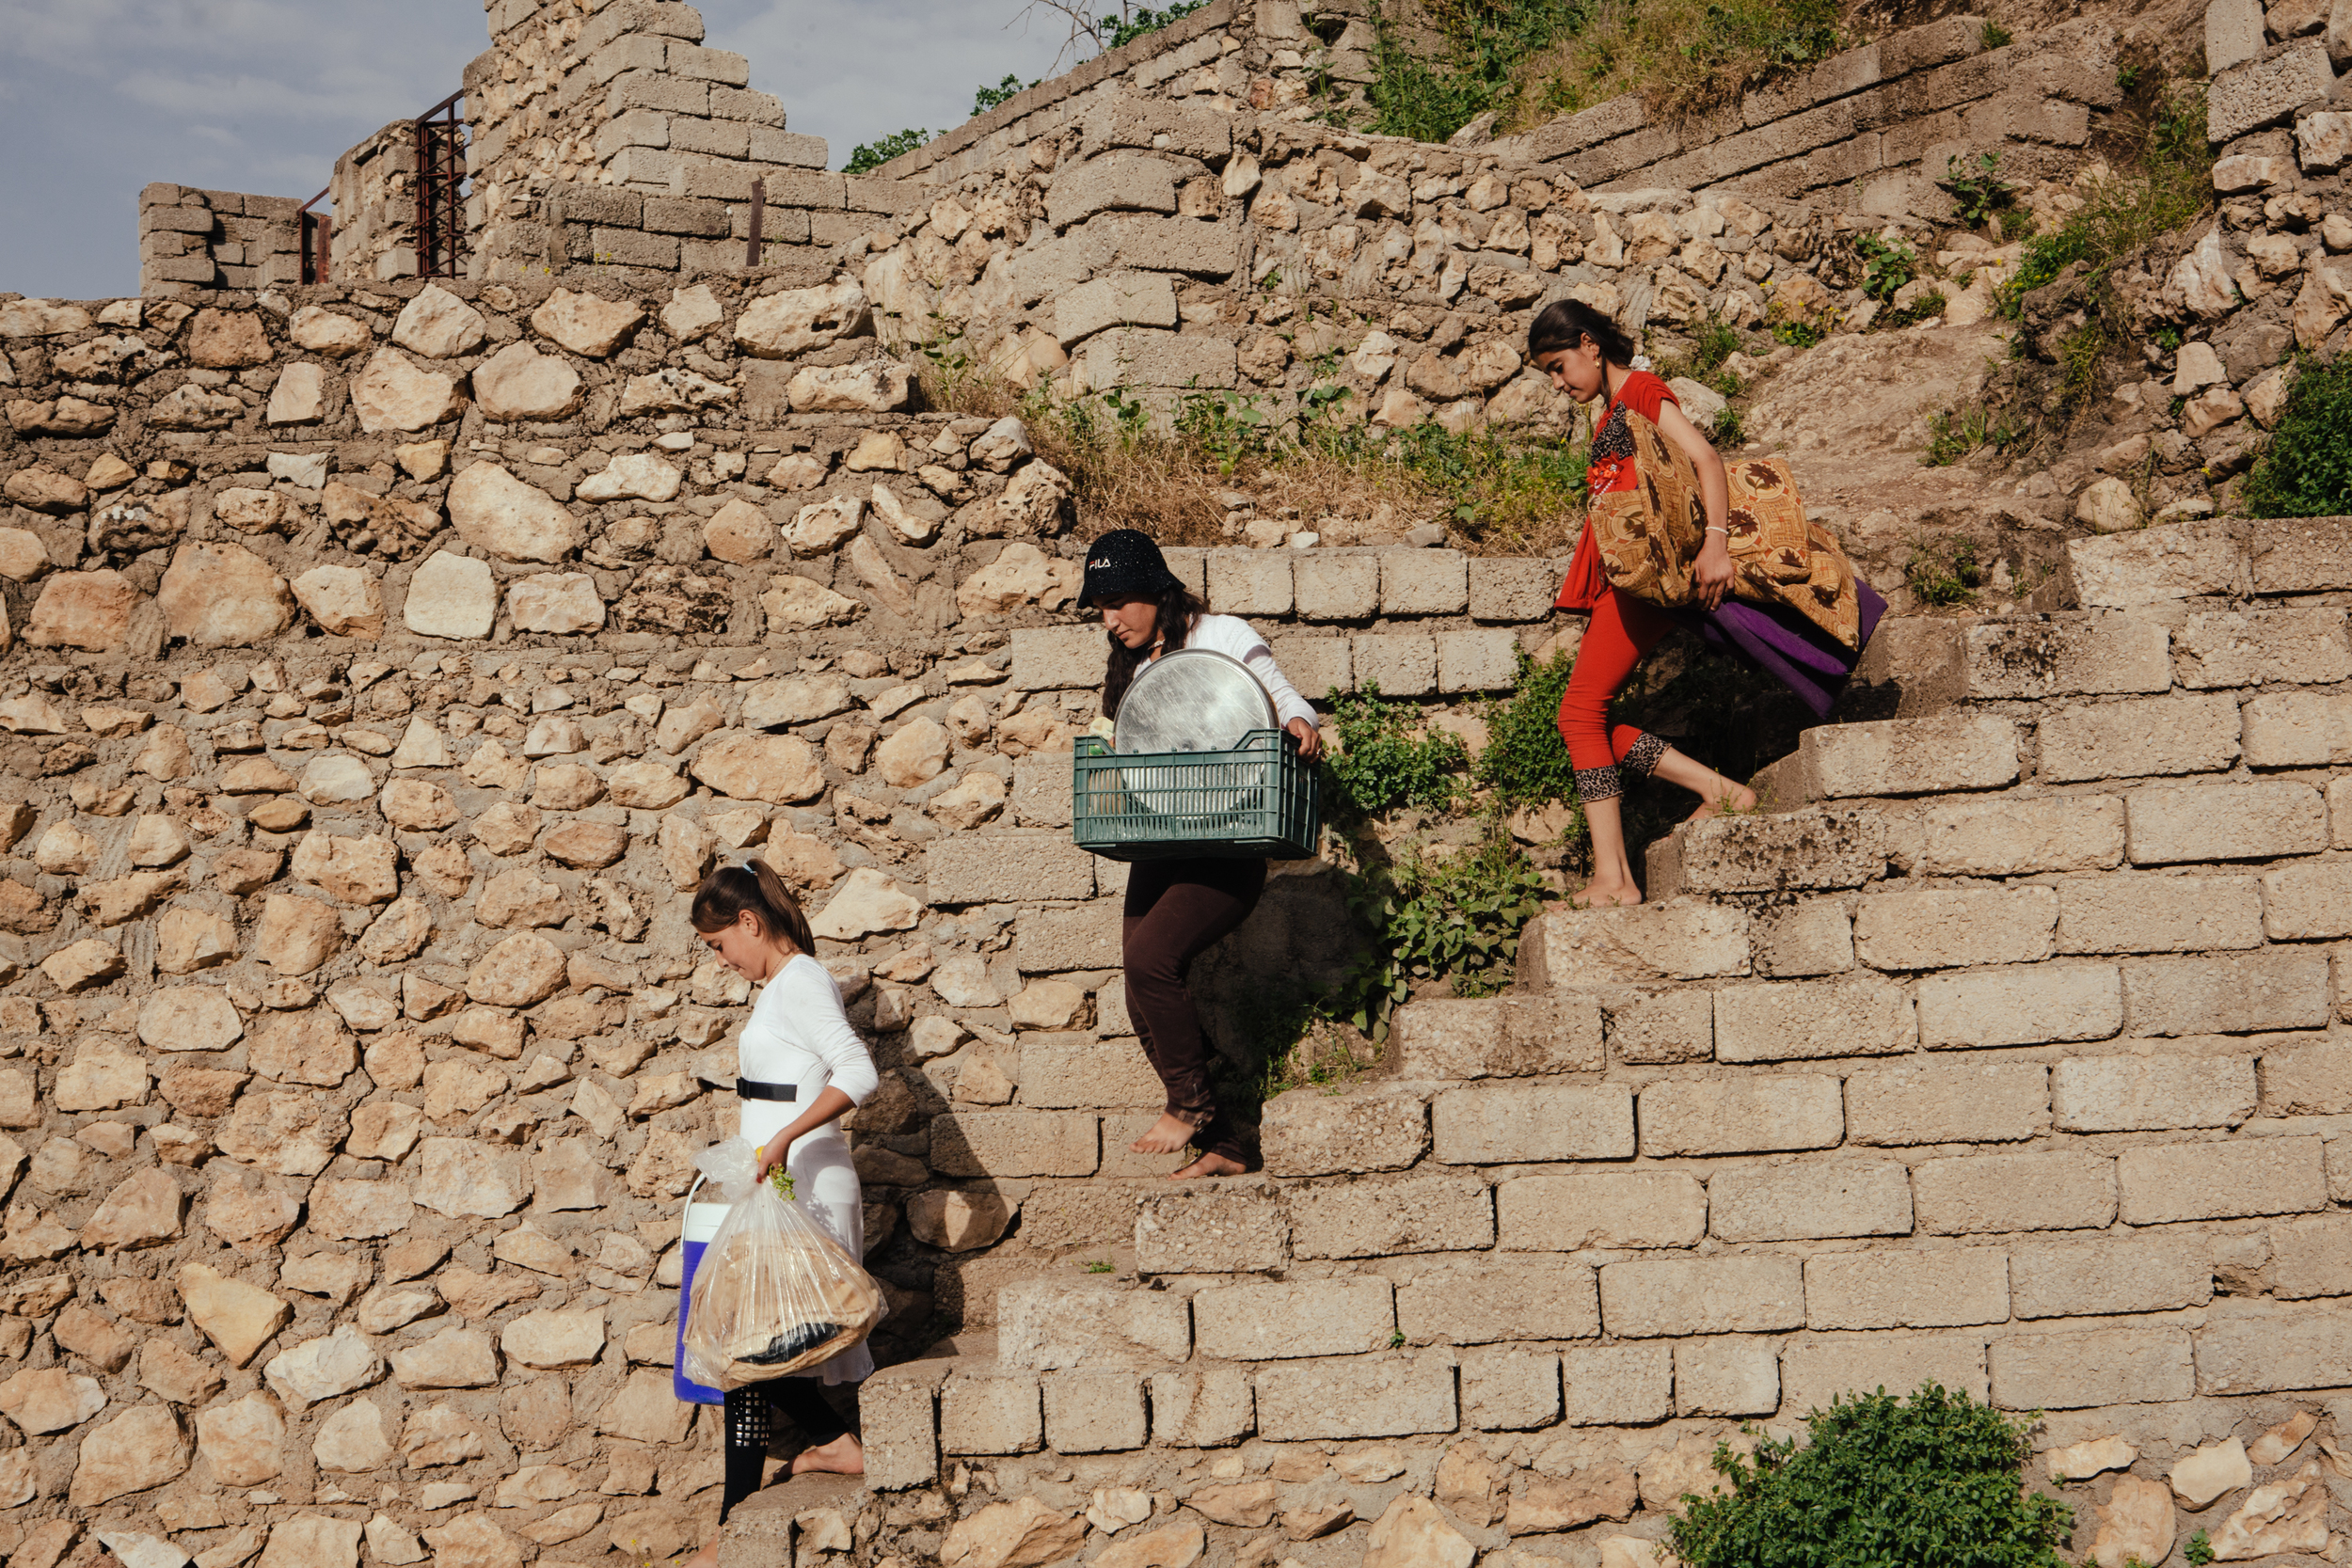 Girls carry food and other items down a staircase at Lalish, the most sacred and only Yezidi temple in the world, in Northern Iraqi Kurdistan.